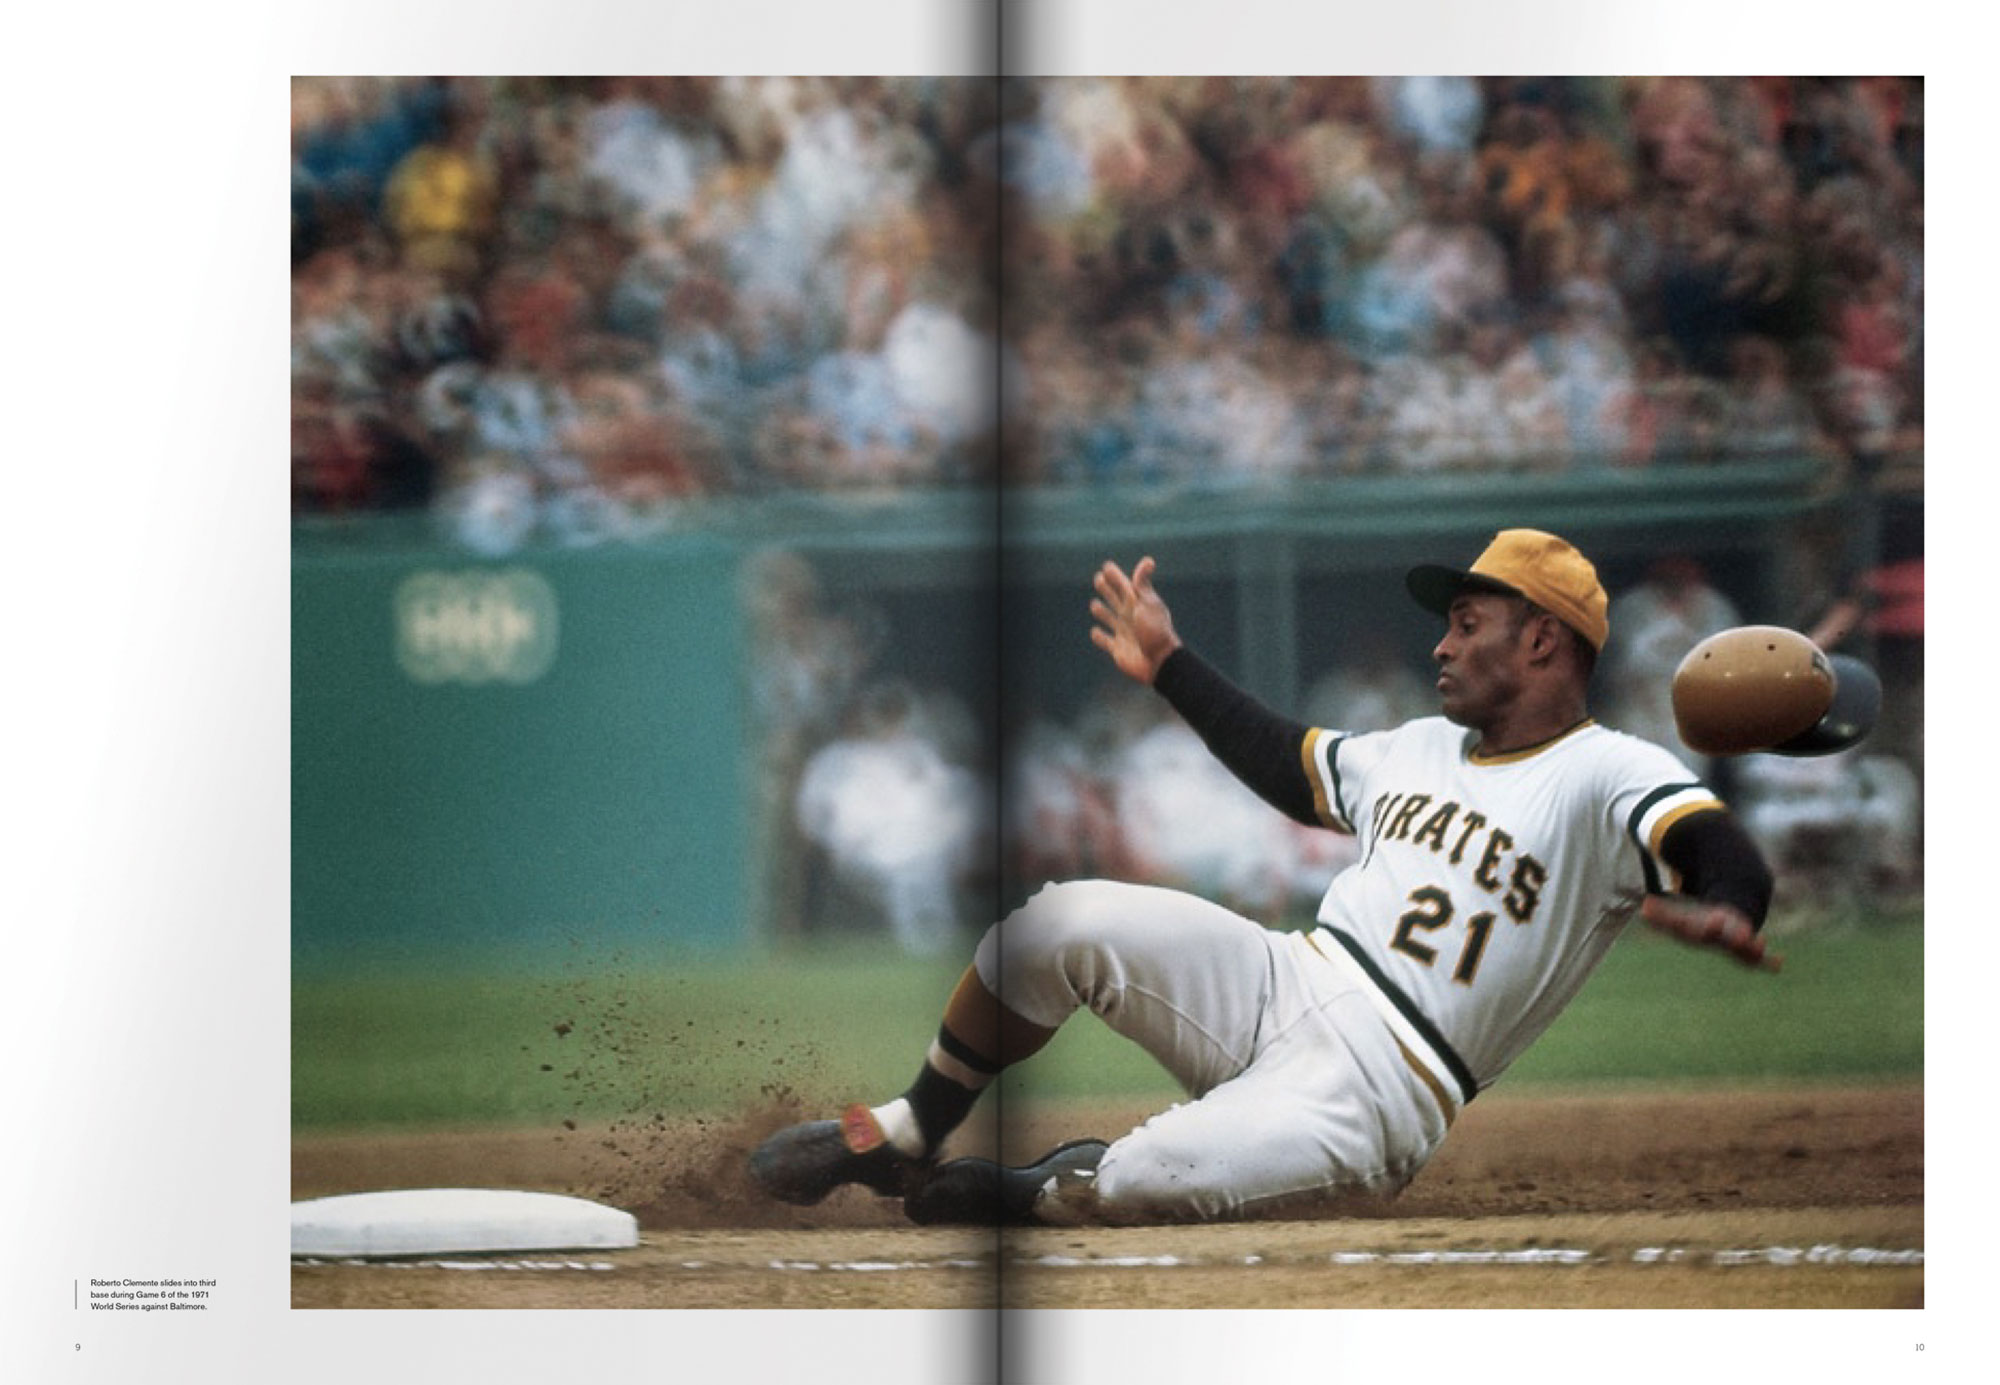 Roberto Clemente sliding into base